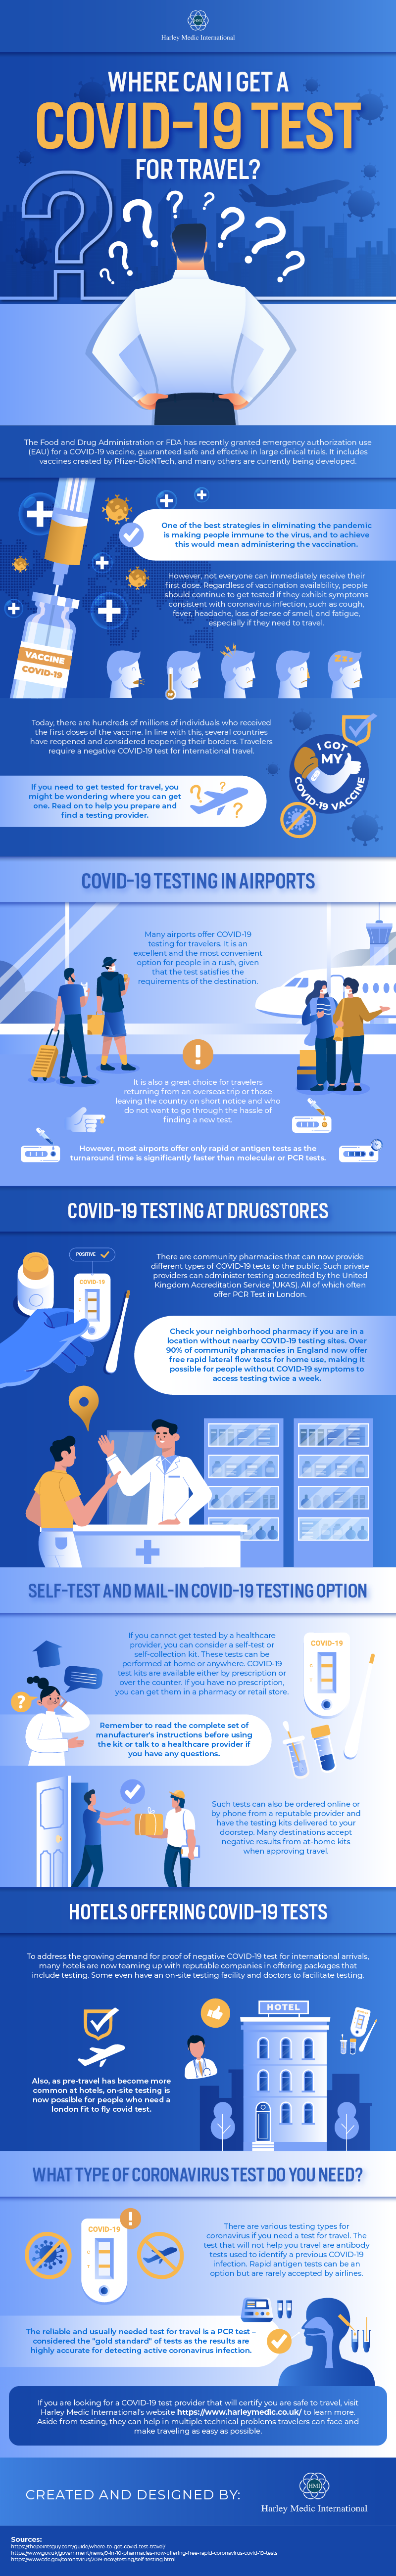 Where can I get a COVID-19 test for travel